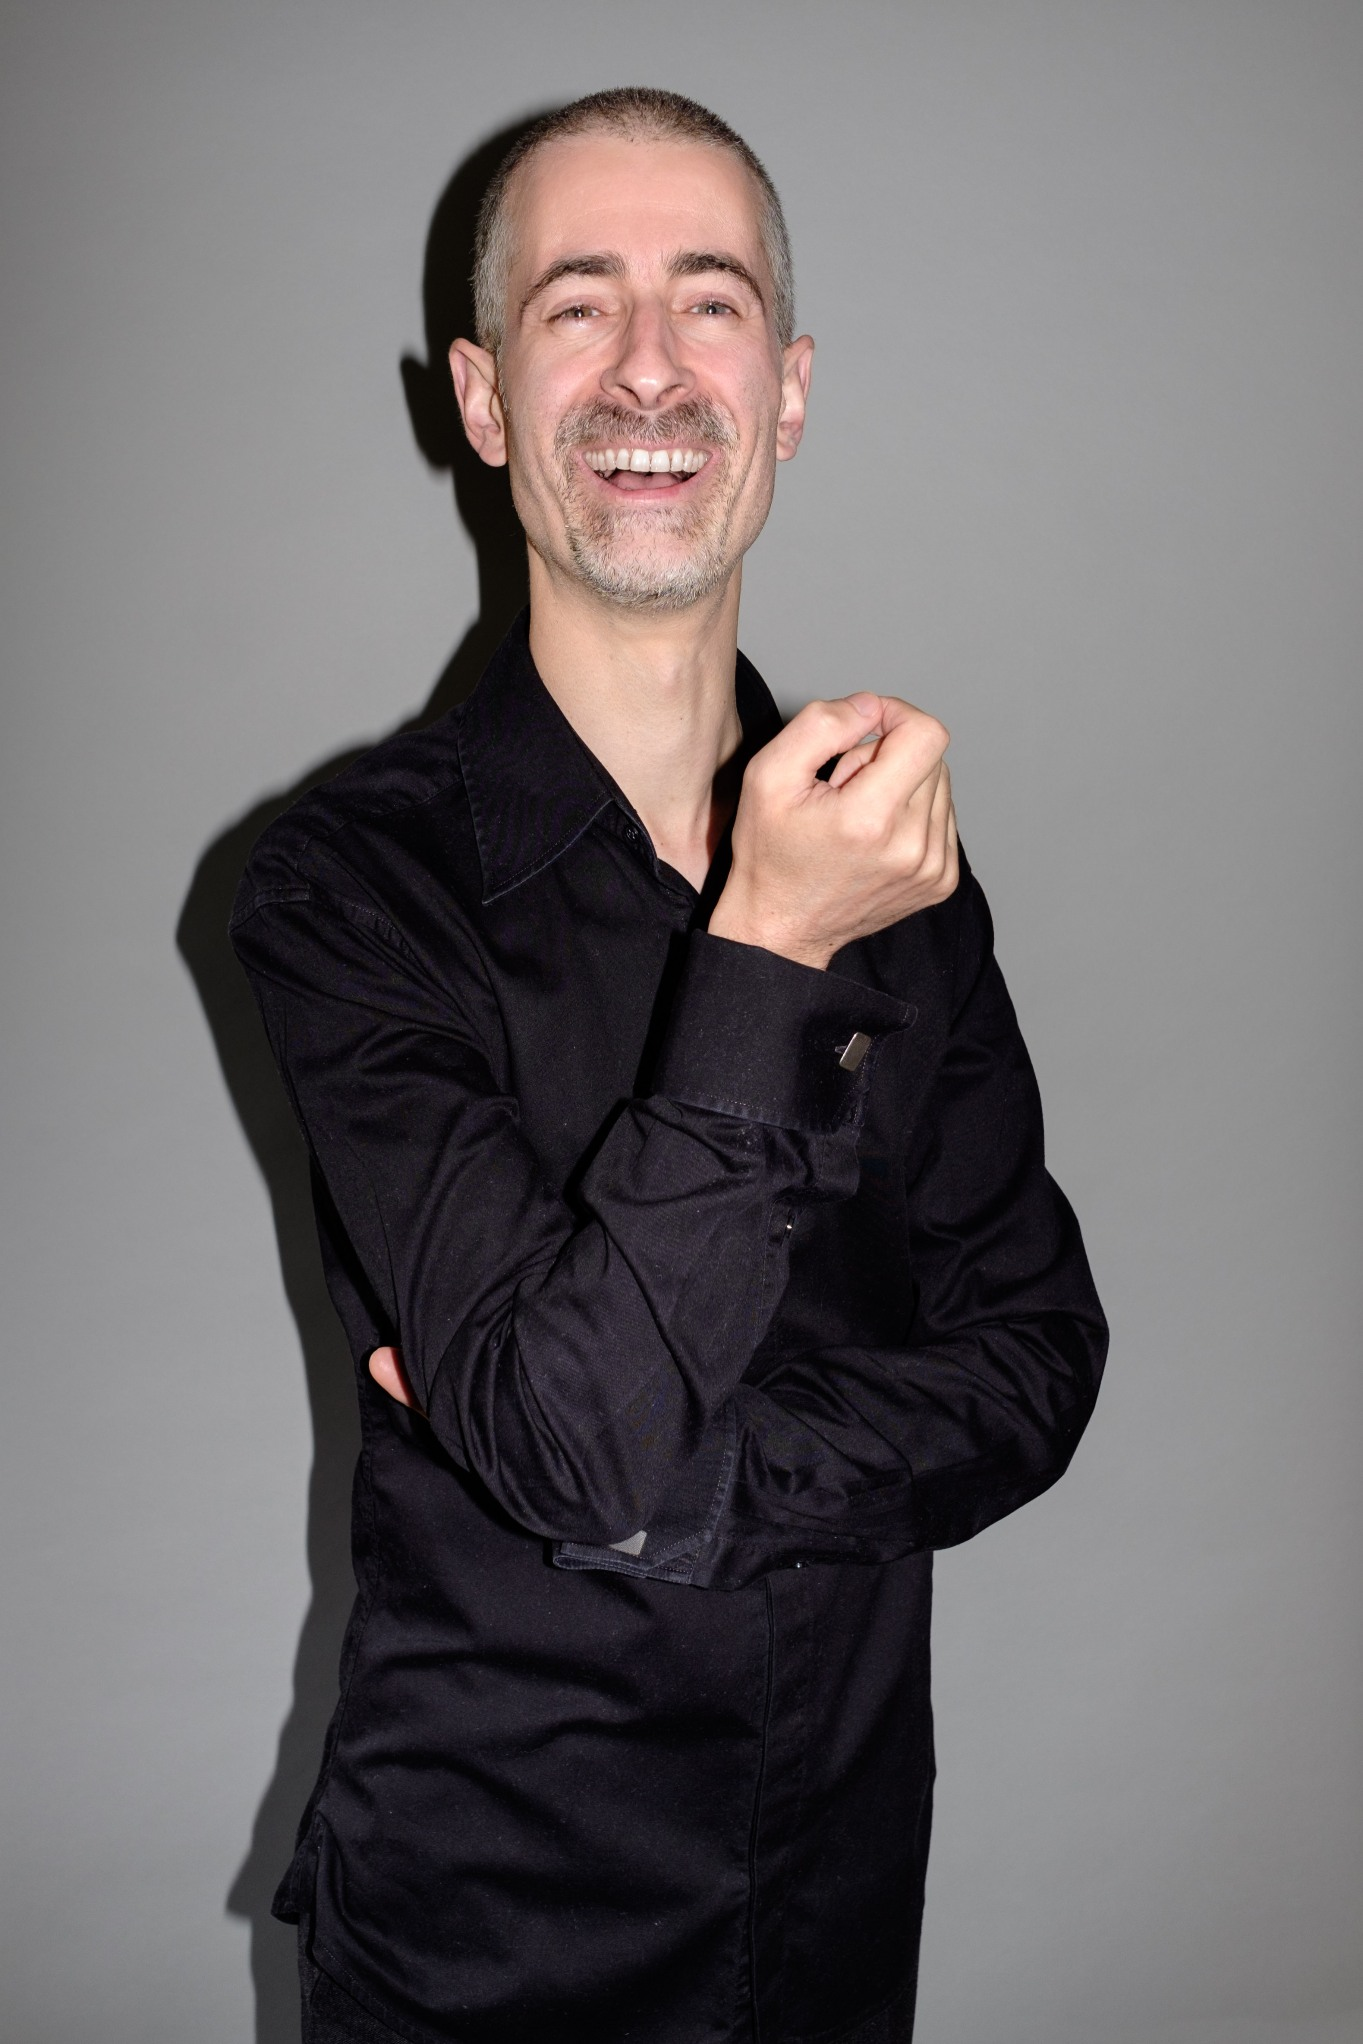 Photos by pianist and conductor Mark Knoop © Dimitri Djuric